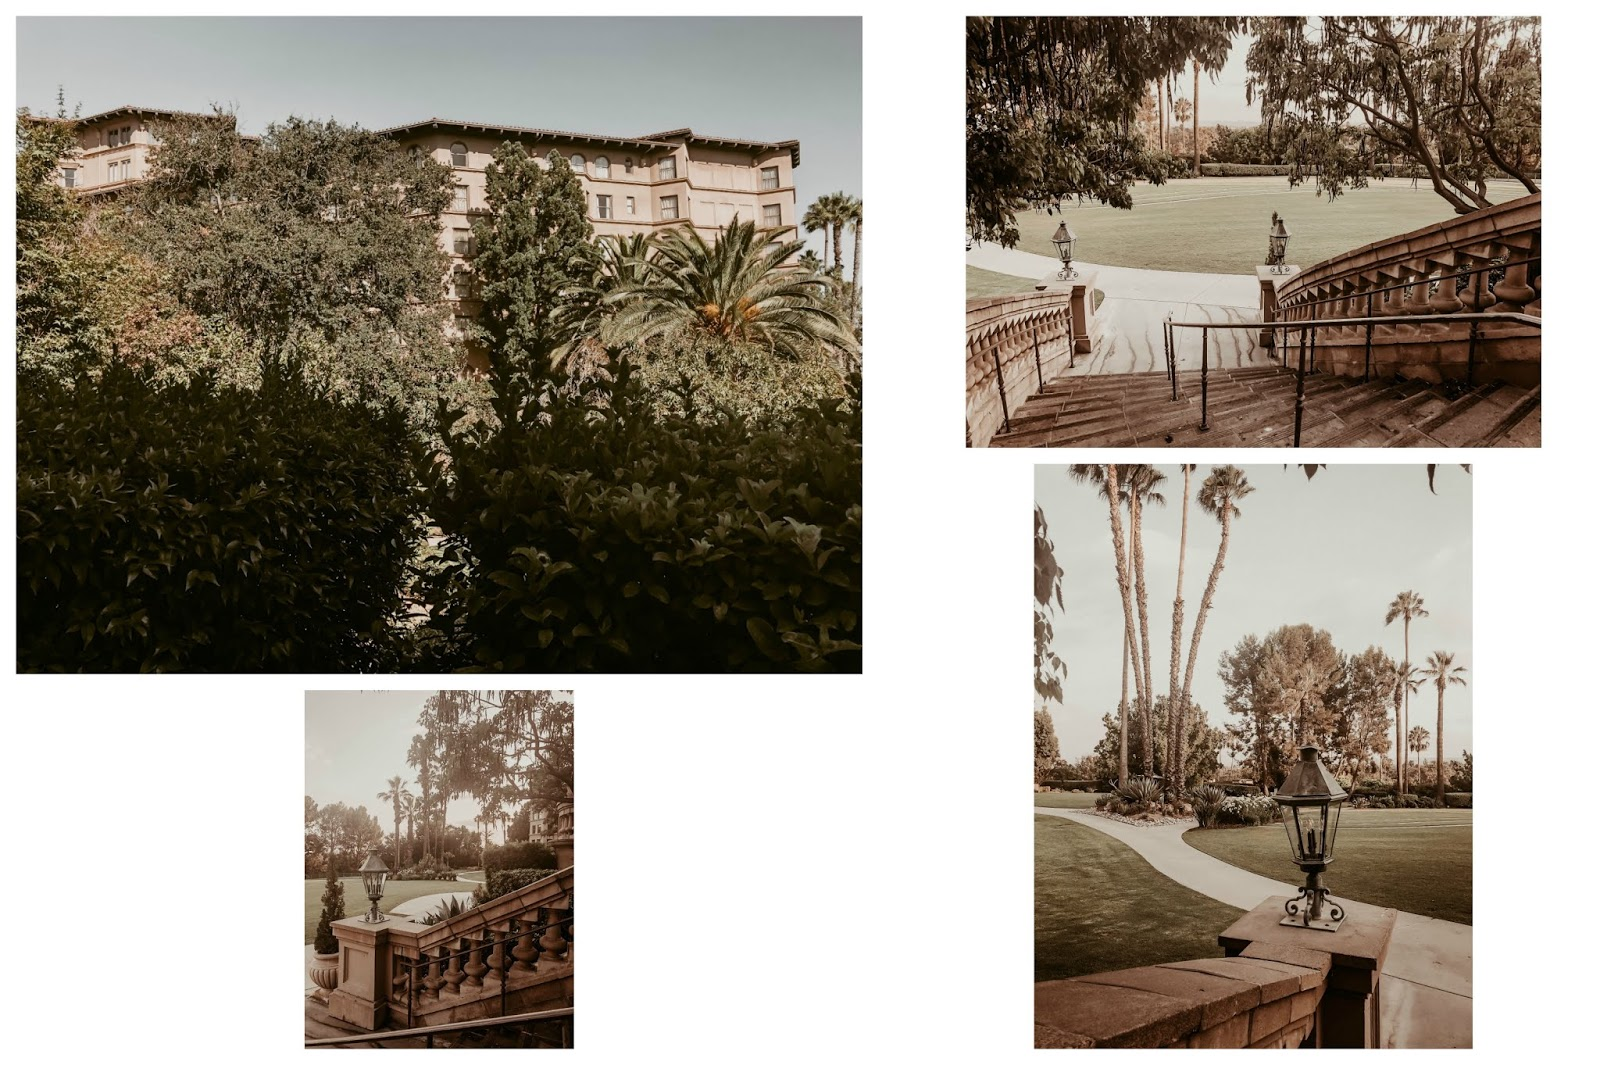 the-most-memorable-end-of-summer2019-staycation-at-the-langham-huntington-hotel-pasadena-california